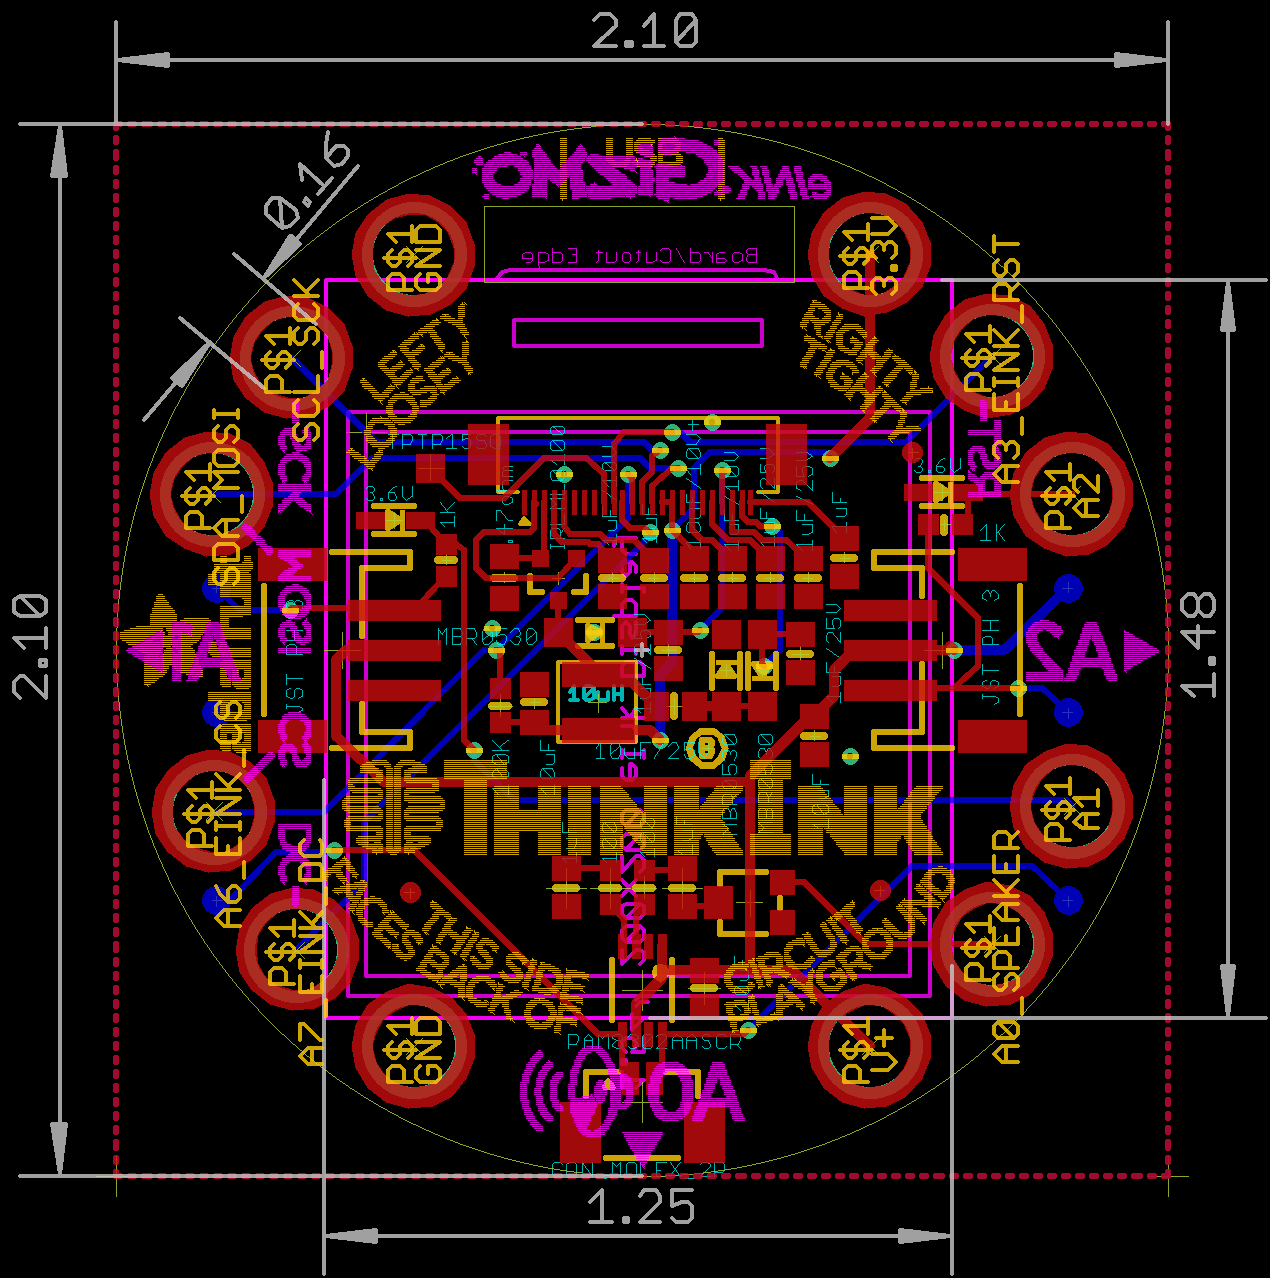 adafruit_products_eInk_Gizmo_Fab_Print.png